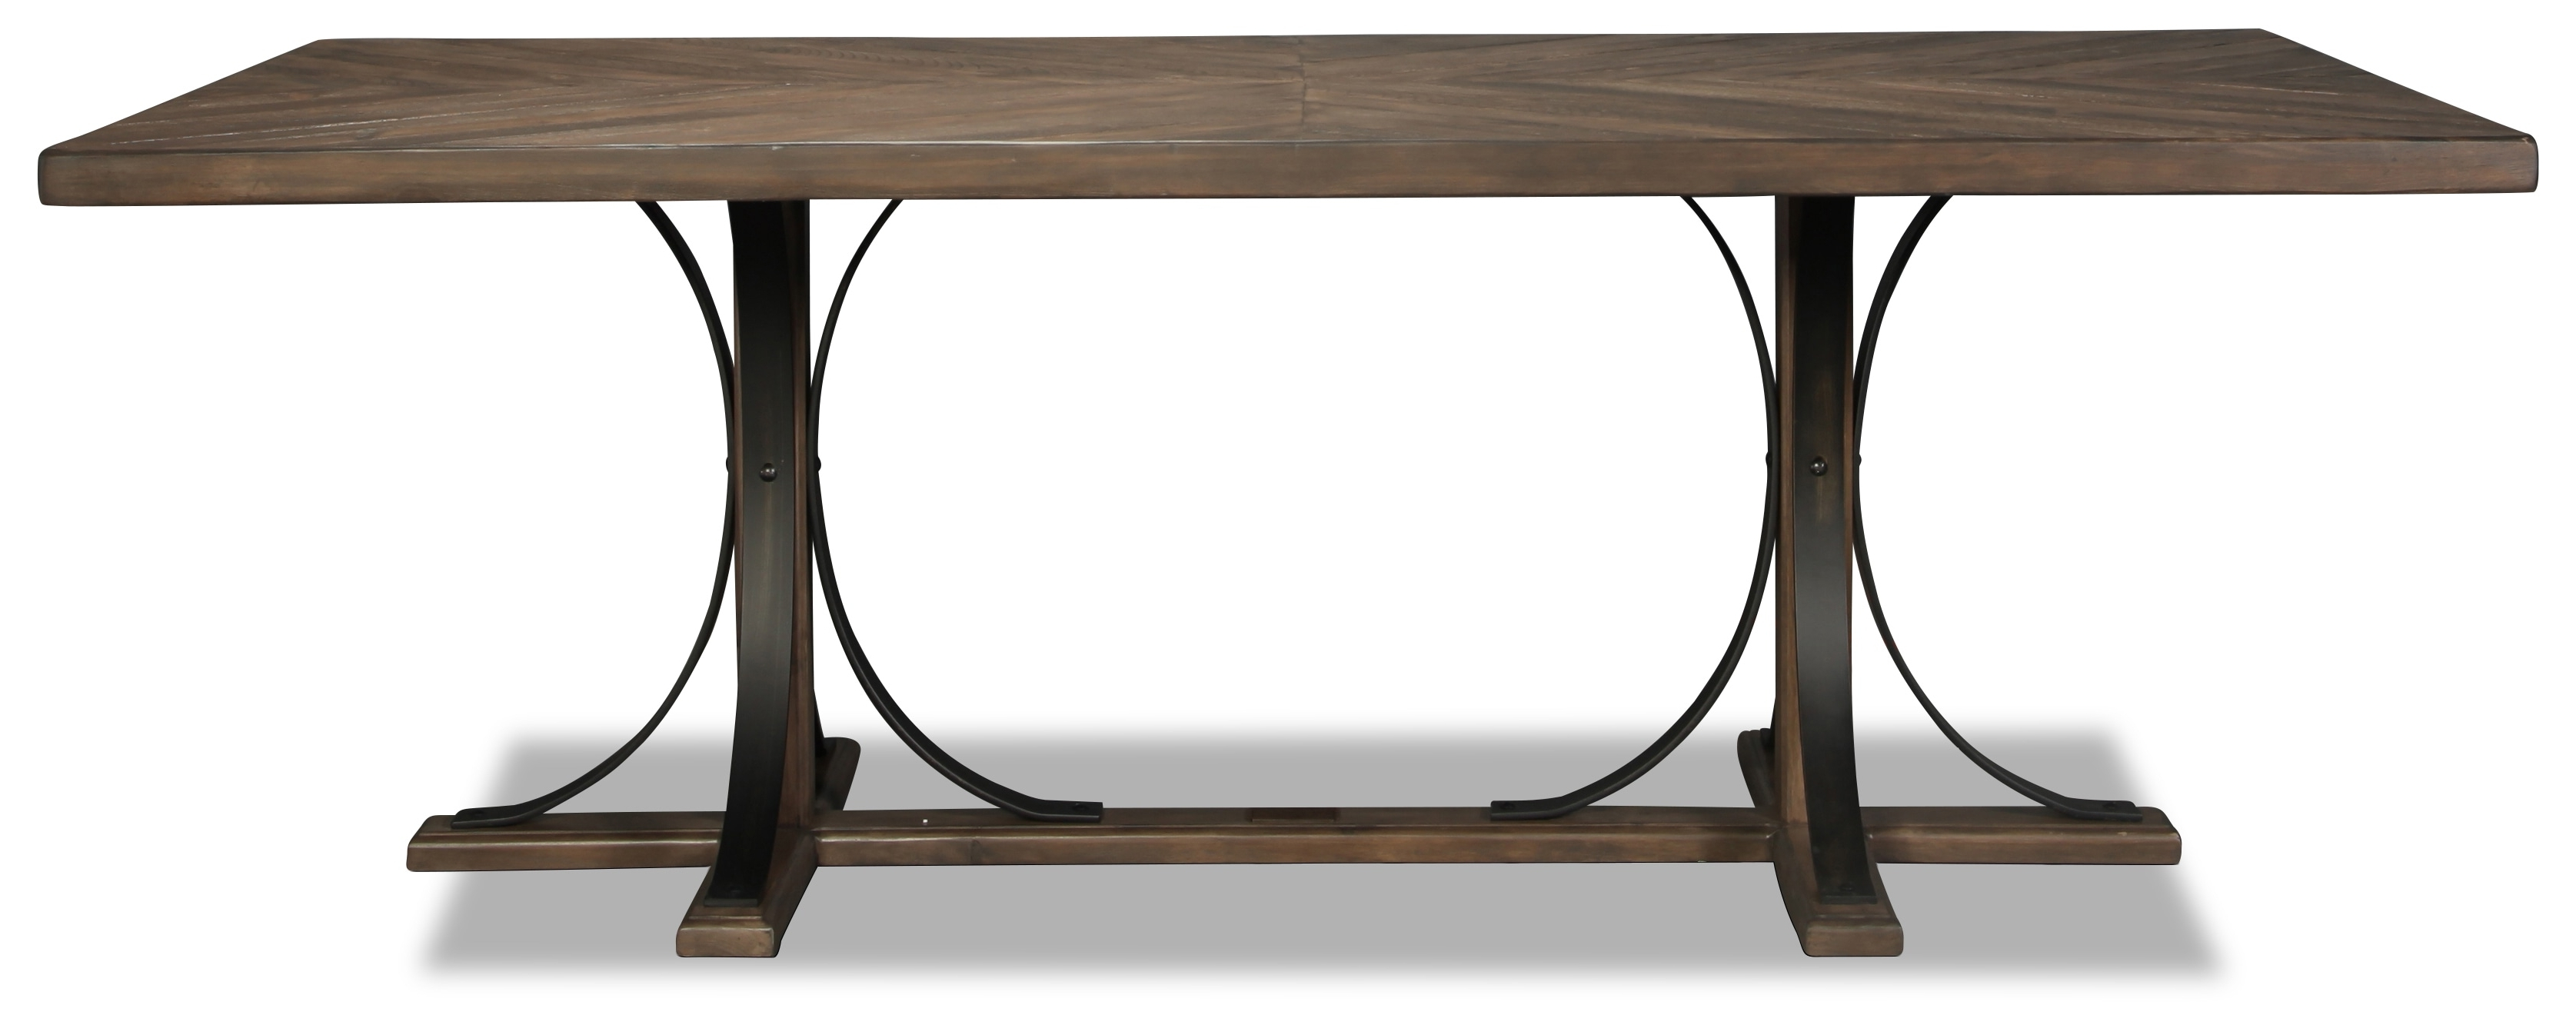 Magnolia Home Traditional Iron Trestle Table (View 5 of 20)